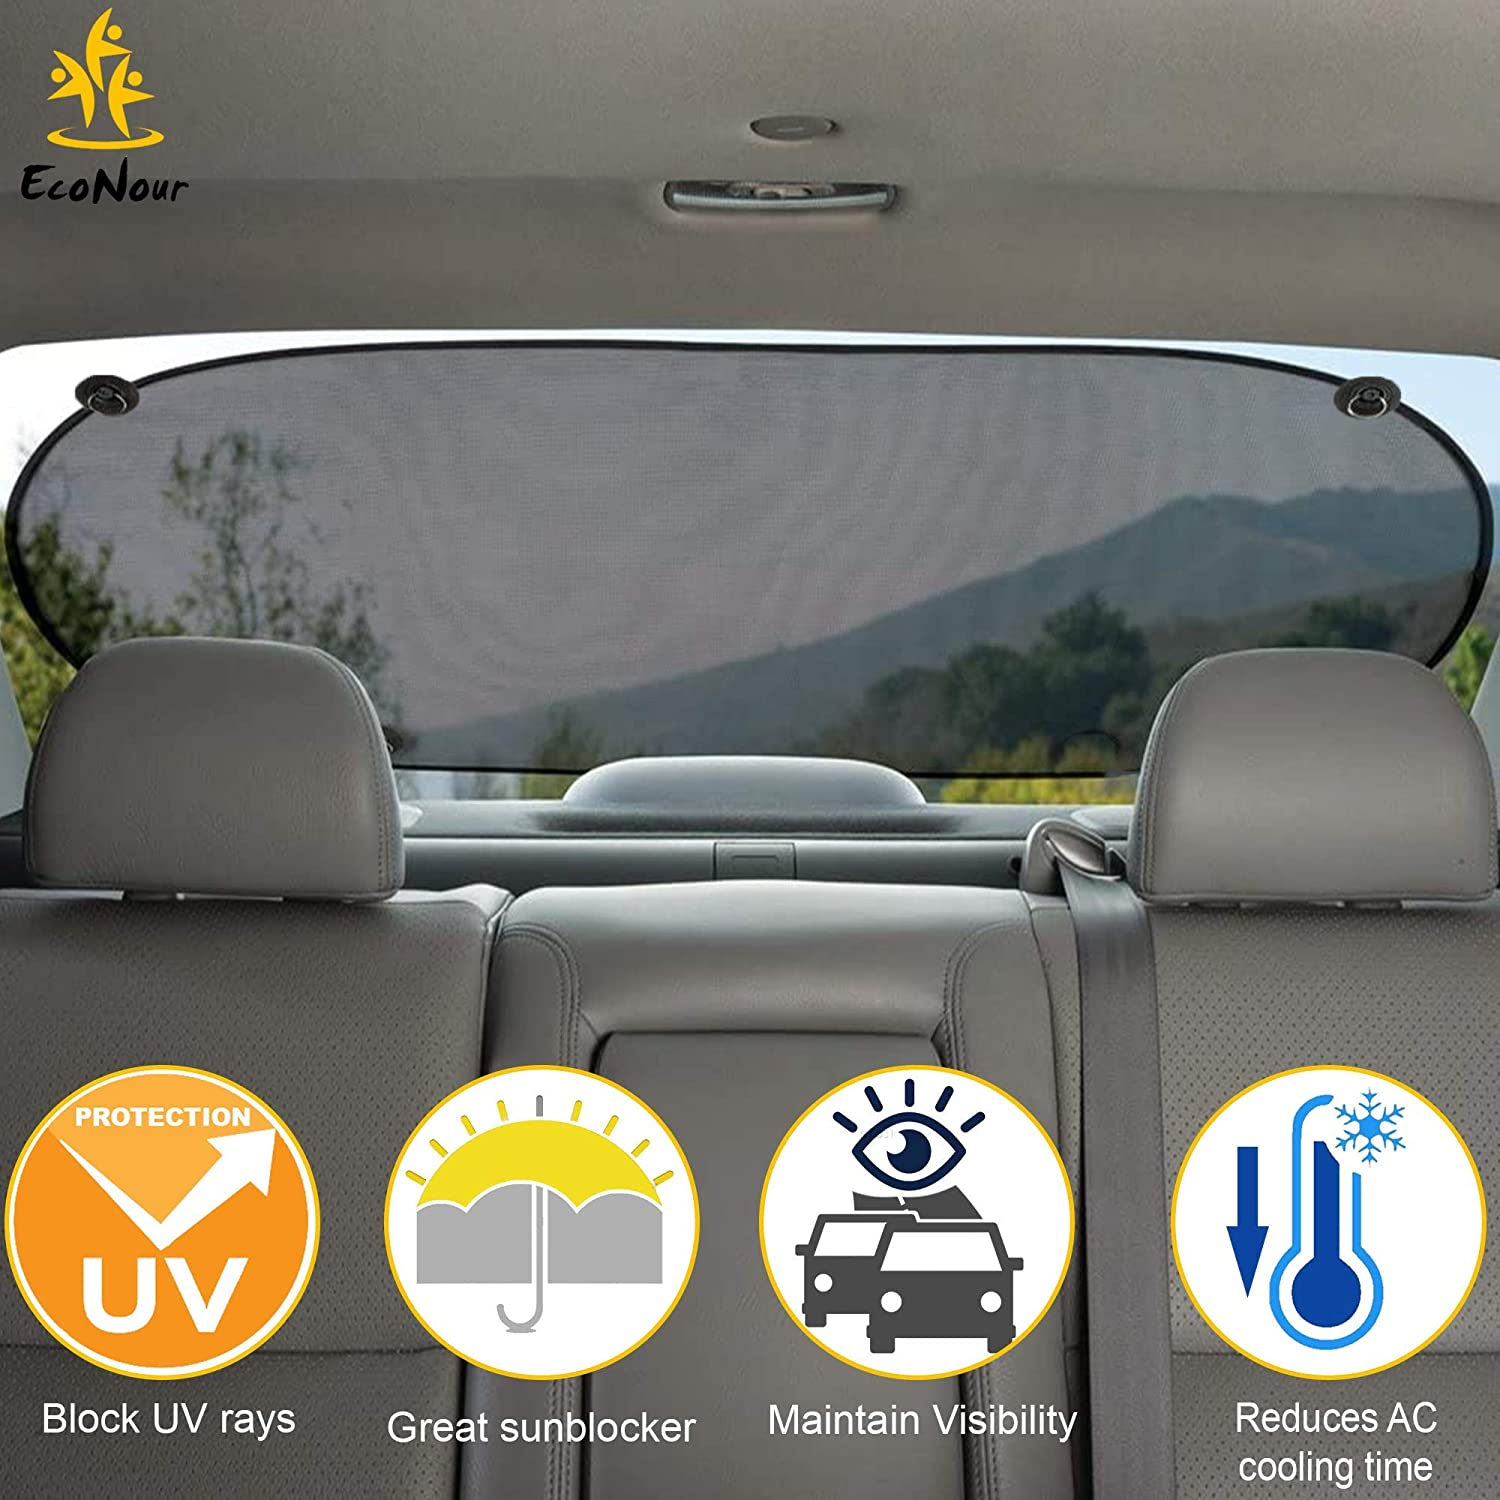 UV//Sun//Glare Protection for Baby Fit for Car//SUV//Truck 40 x 20 Inch EcoNour Car Rear Window Sunshade Screen Mesh Cover Universal Mesh Back Window Visor with Suction Cup